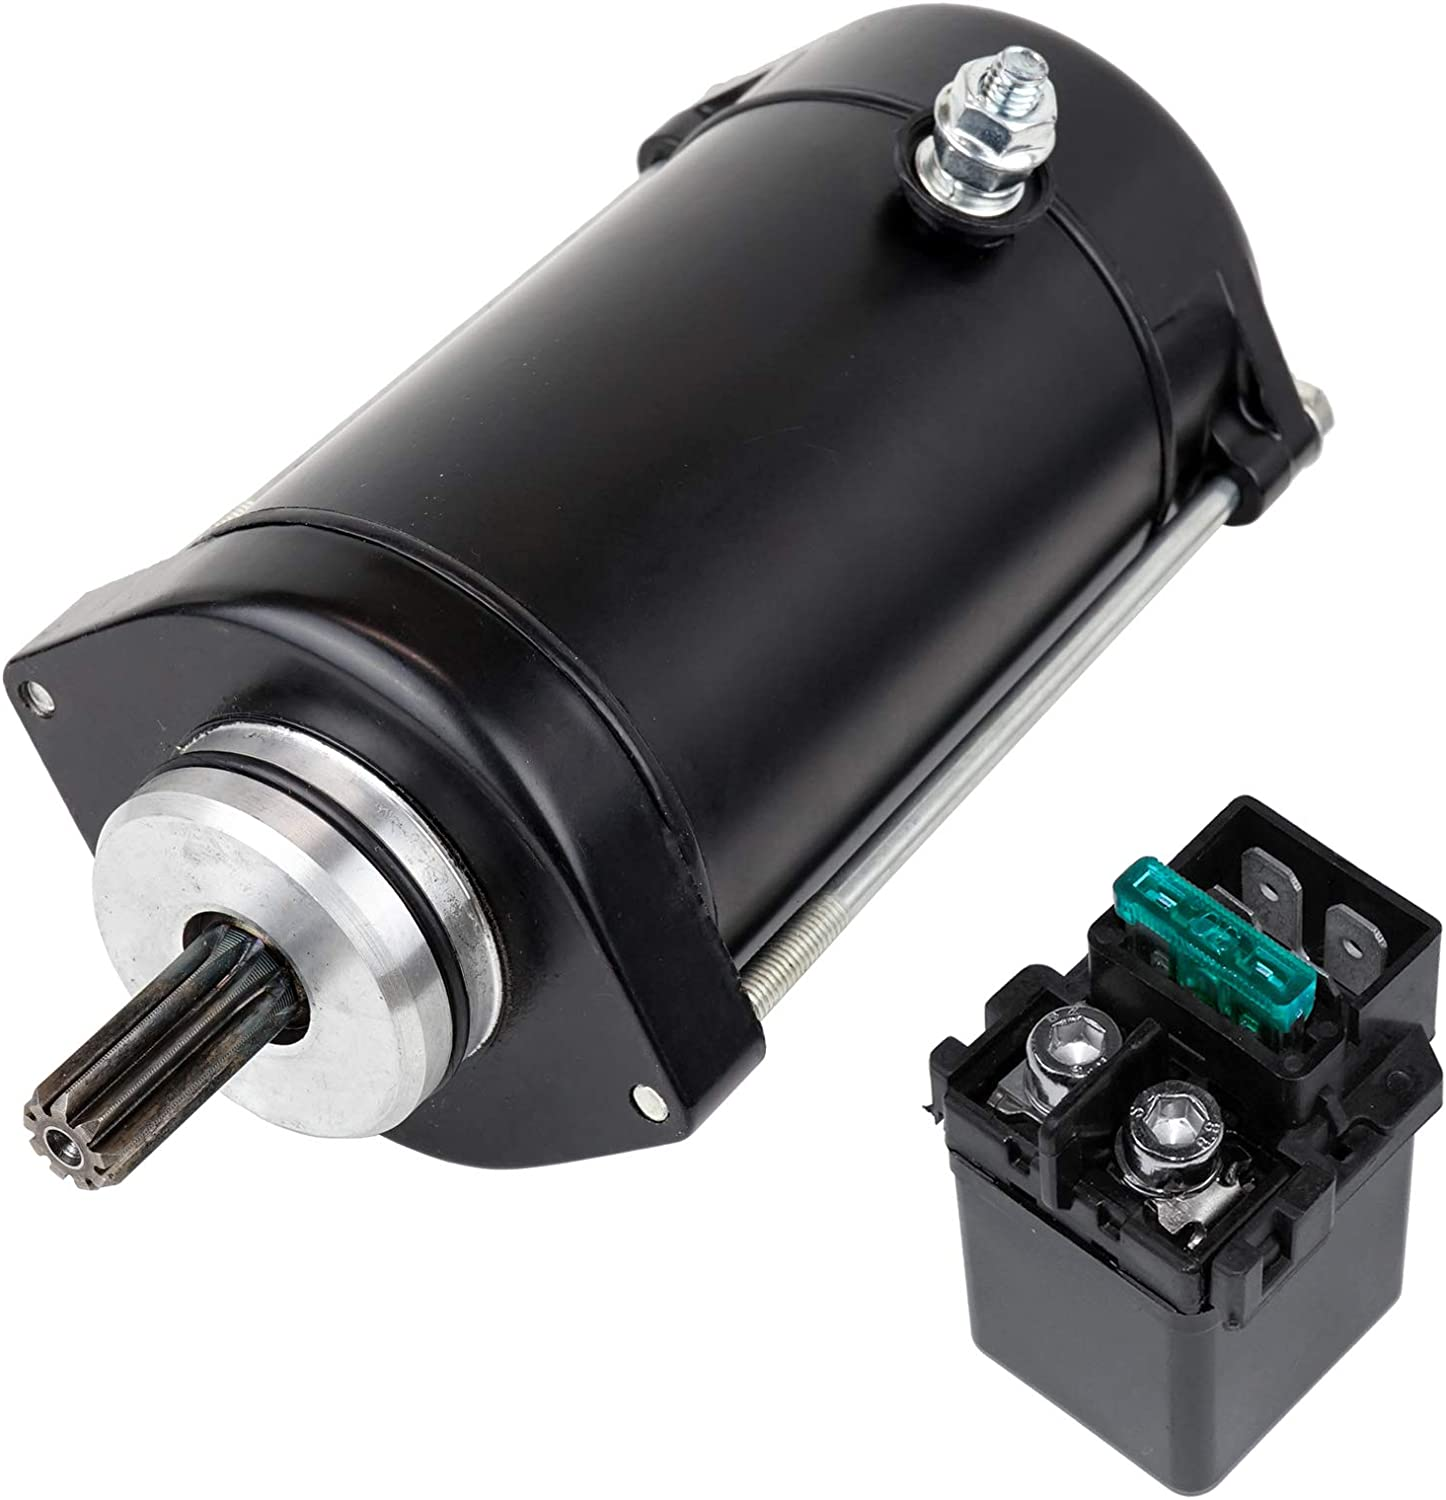 Caltric Starter And Relay Solenoid Vulc With Philadelphia Mall Kawasaki Compatible Finally popular brand